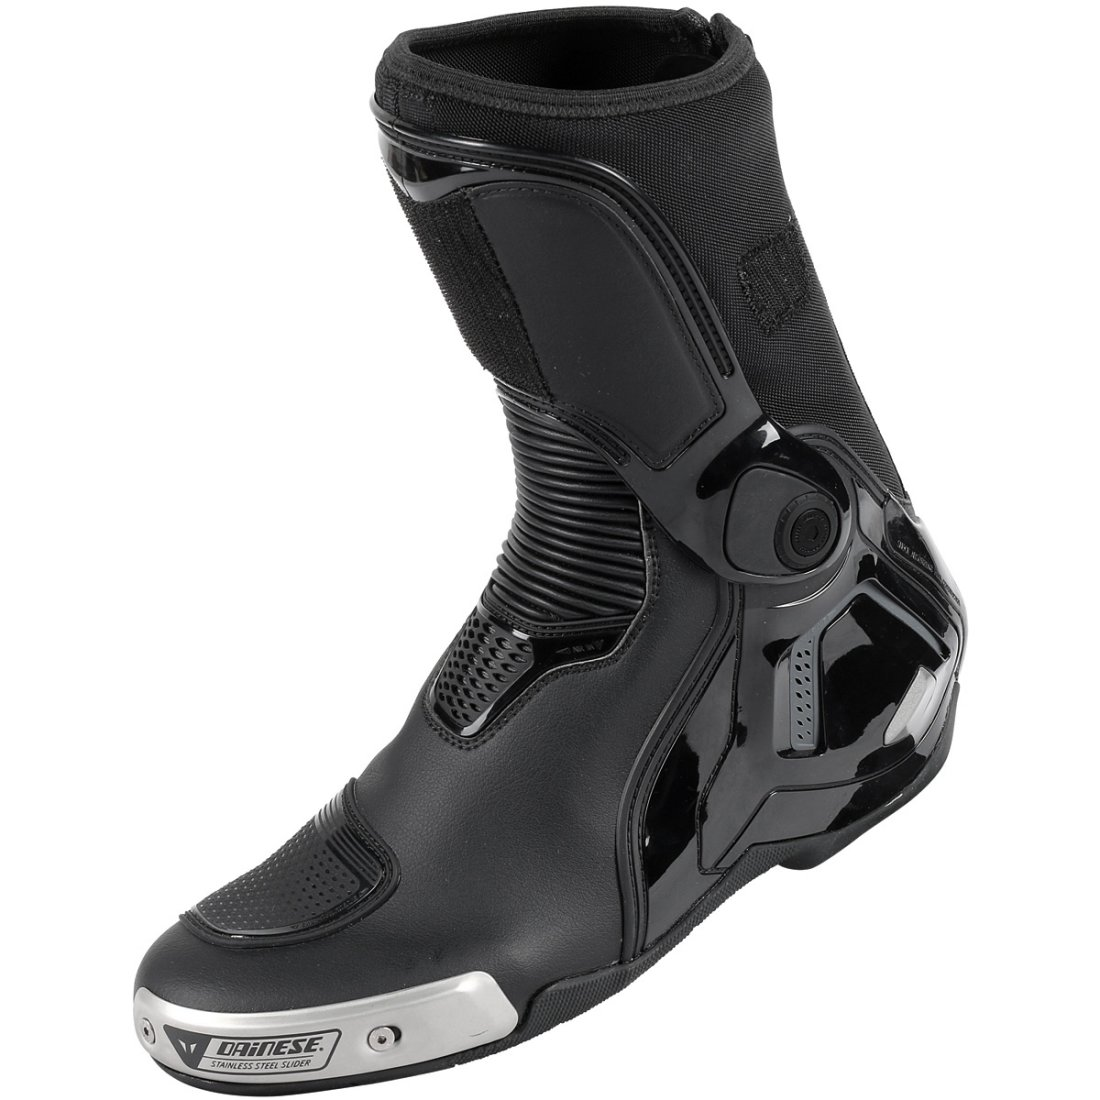 DAINESE Torque D1 In Black Anthracite Boots